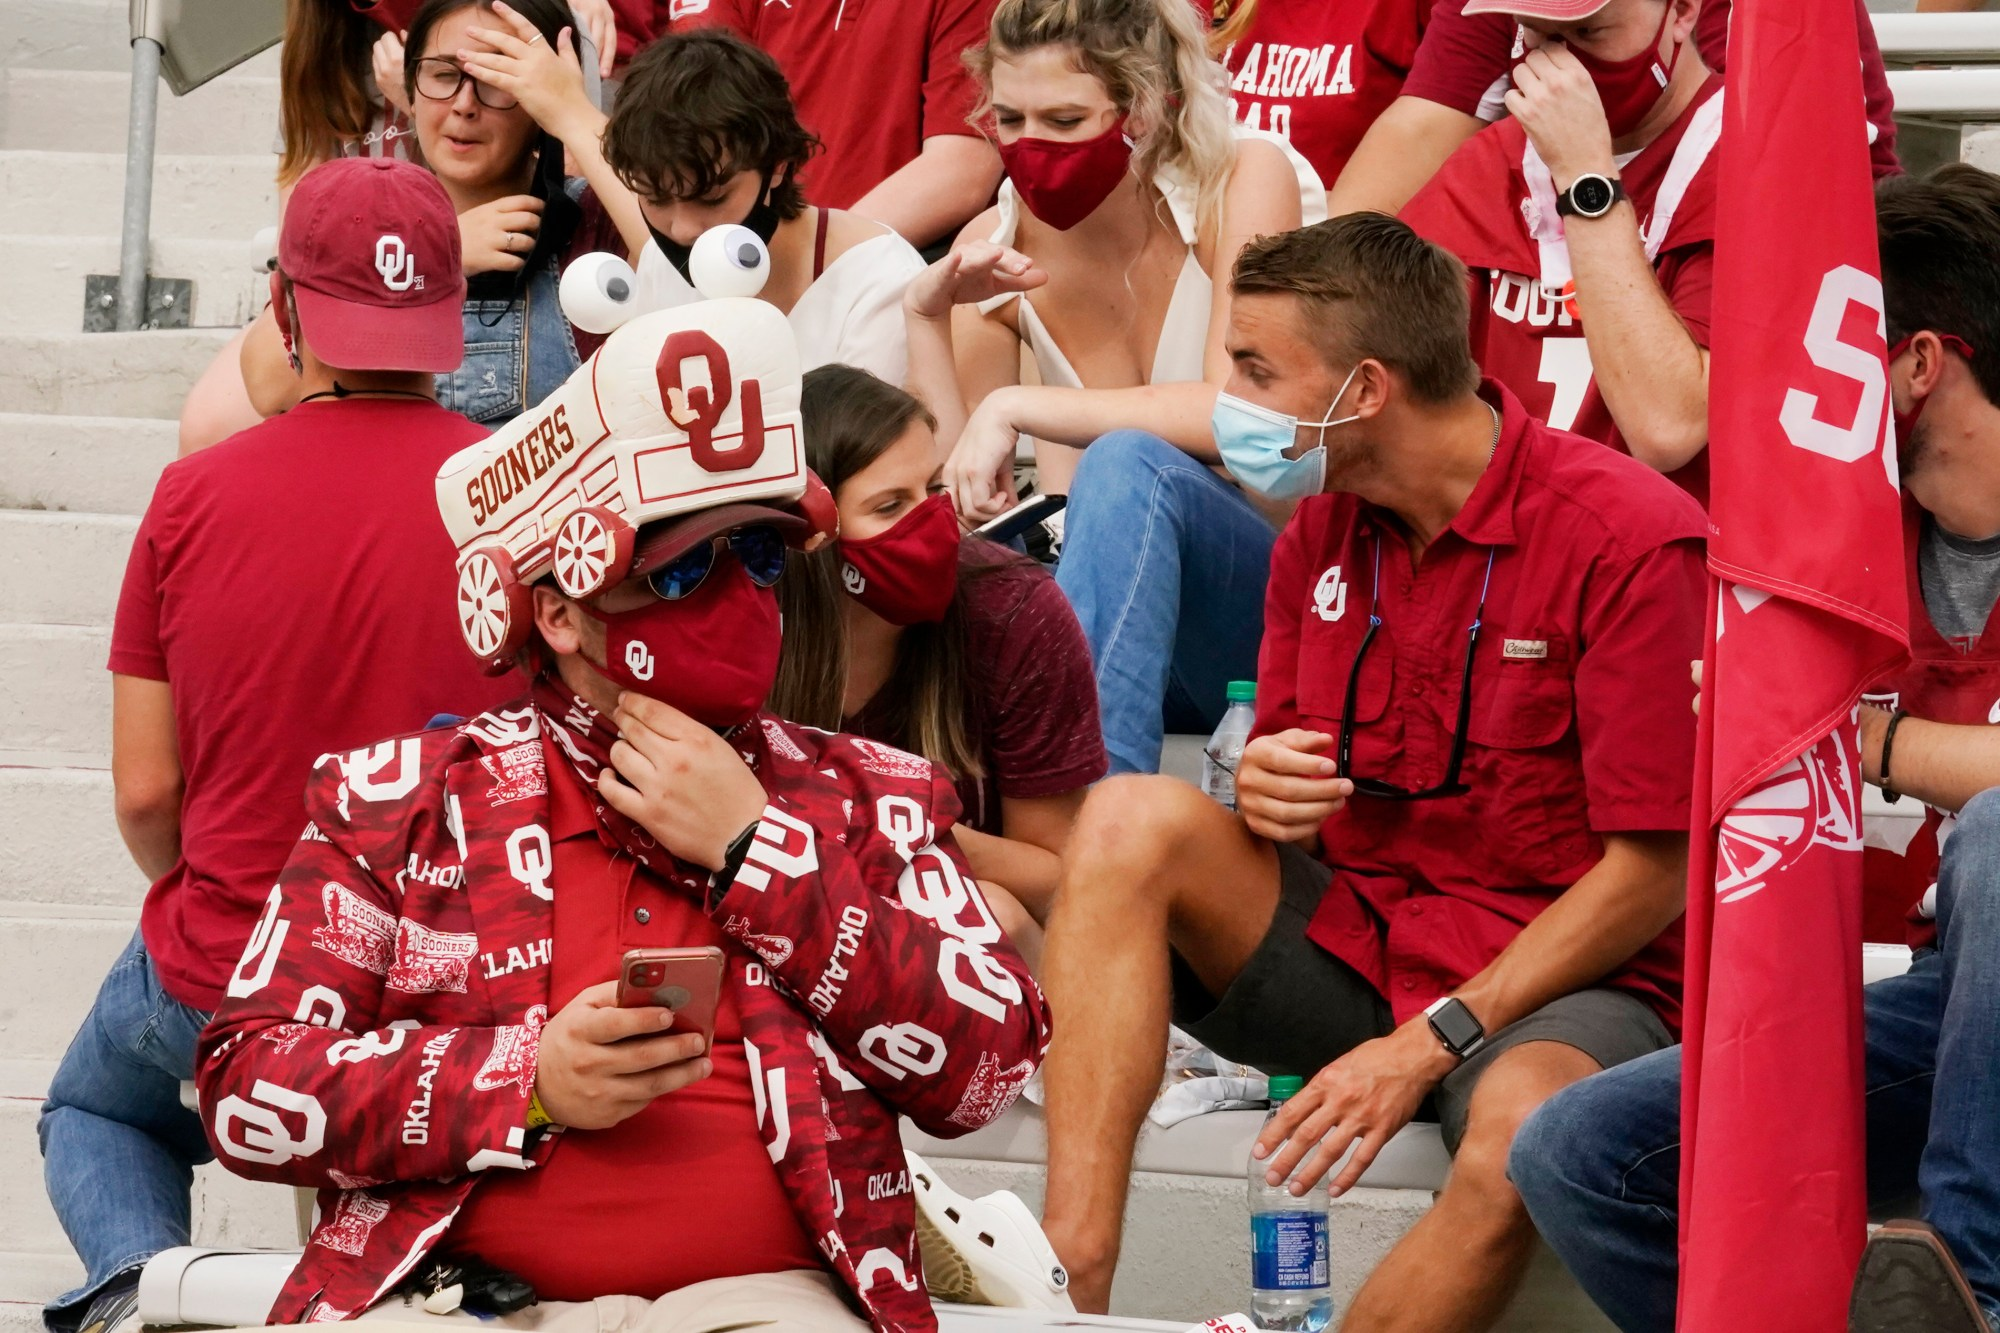 Fans in the student section wait for the start of the Missouri State vs. Oklahoma NCAA college football game on Sept. 12, 2020 in Norman, Okla. Due to coronavirus (COVID-19) restriction, no fans are allowed in the first rows, only cut-outs. (Sue Ogrocki-Pool/Getty Images)